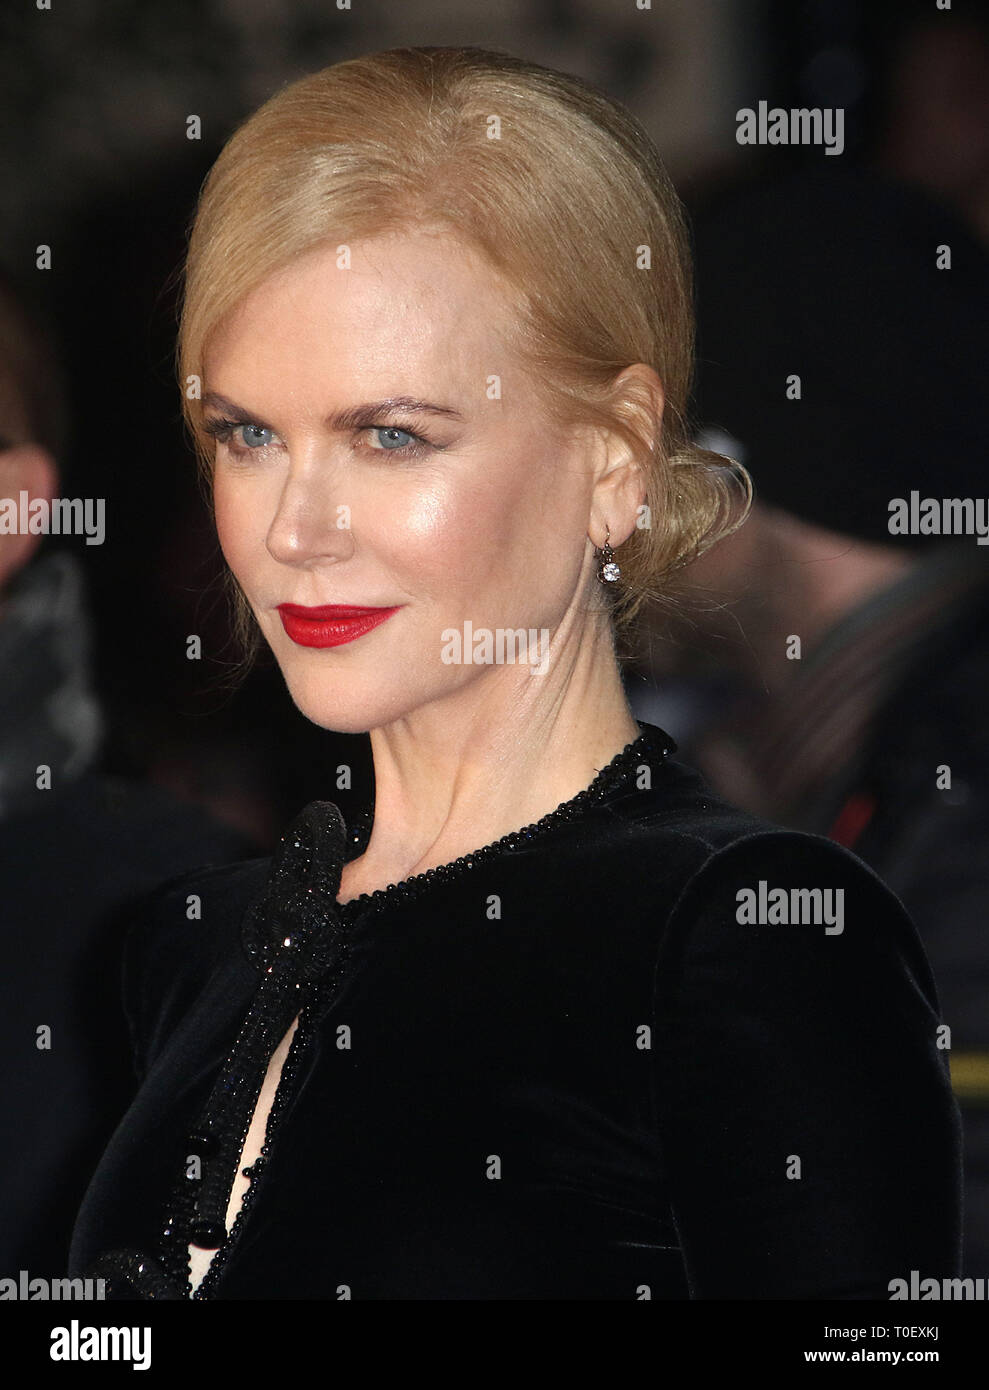 Oct 12, 2016 - London, England, UK - 60th Annual BFI London Film Festival - 'Lion' American Express Gala, Odeon Leicester Square - Red Carpet Arrivals - Stock Image